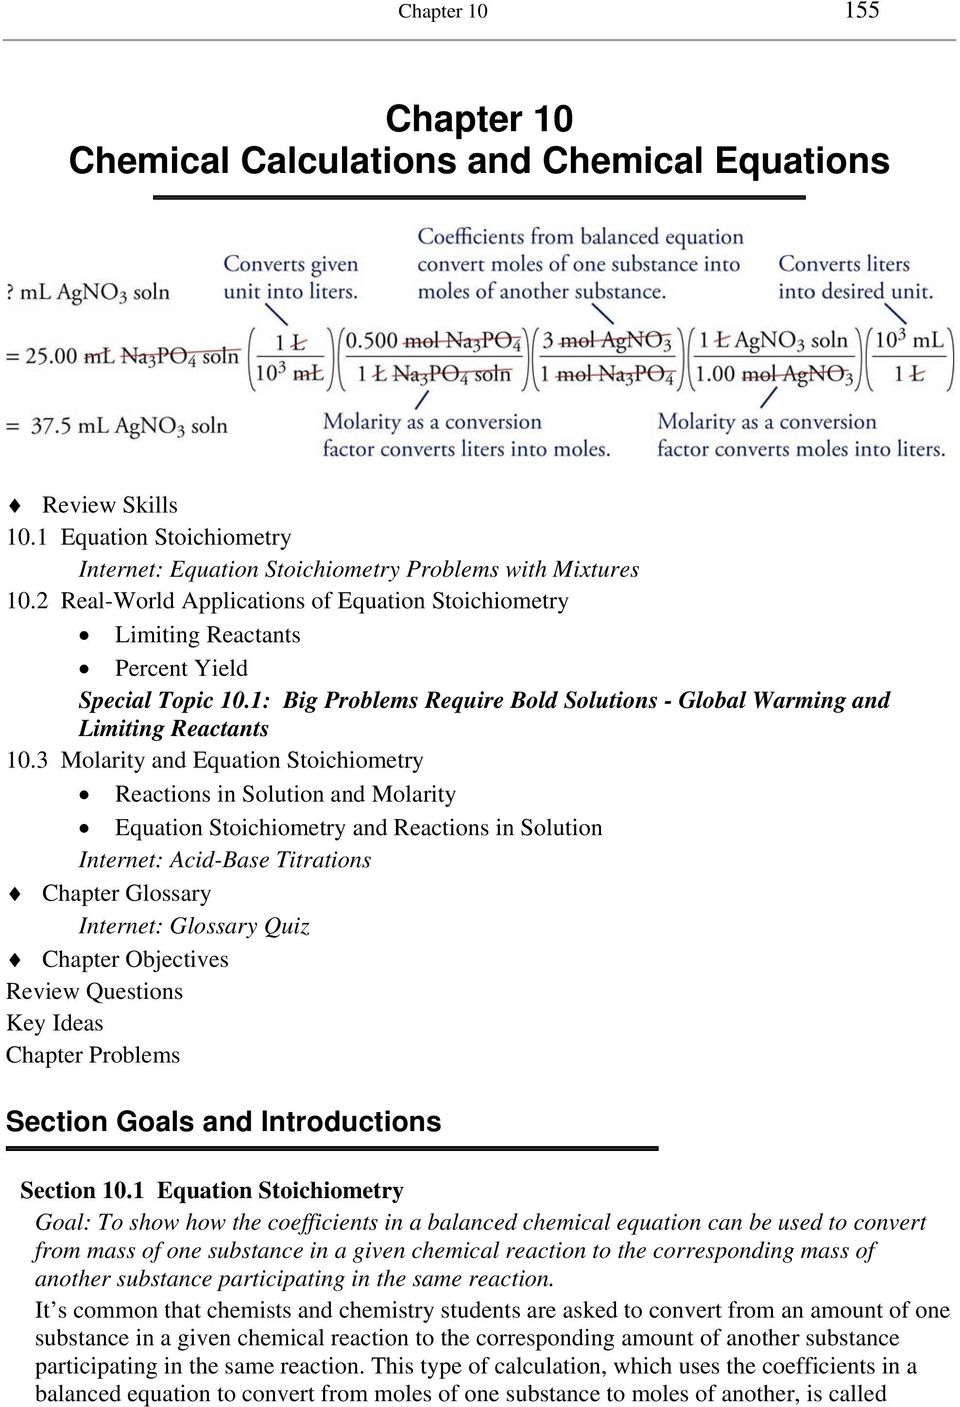 Chapter 10 Chemical Calculations and Chemical Equations - PDF